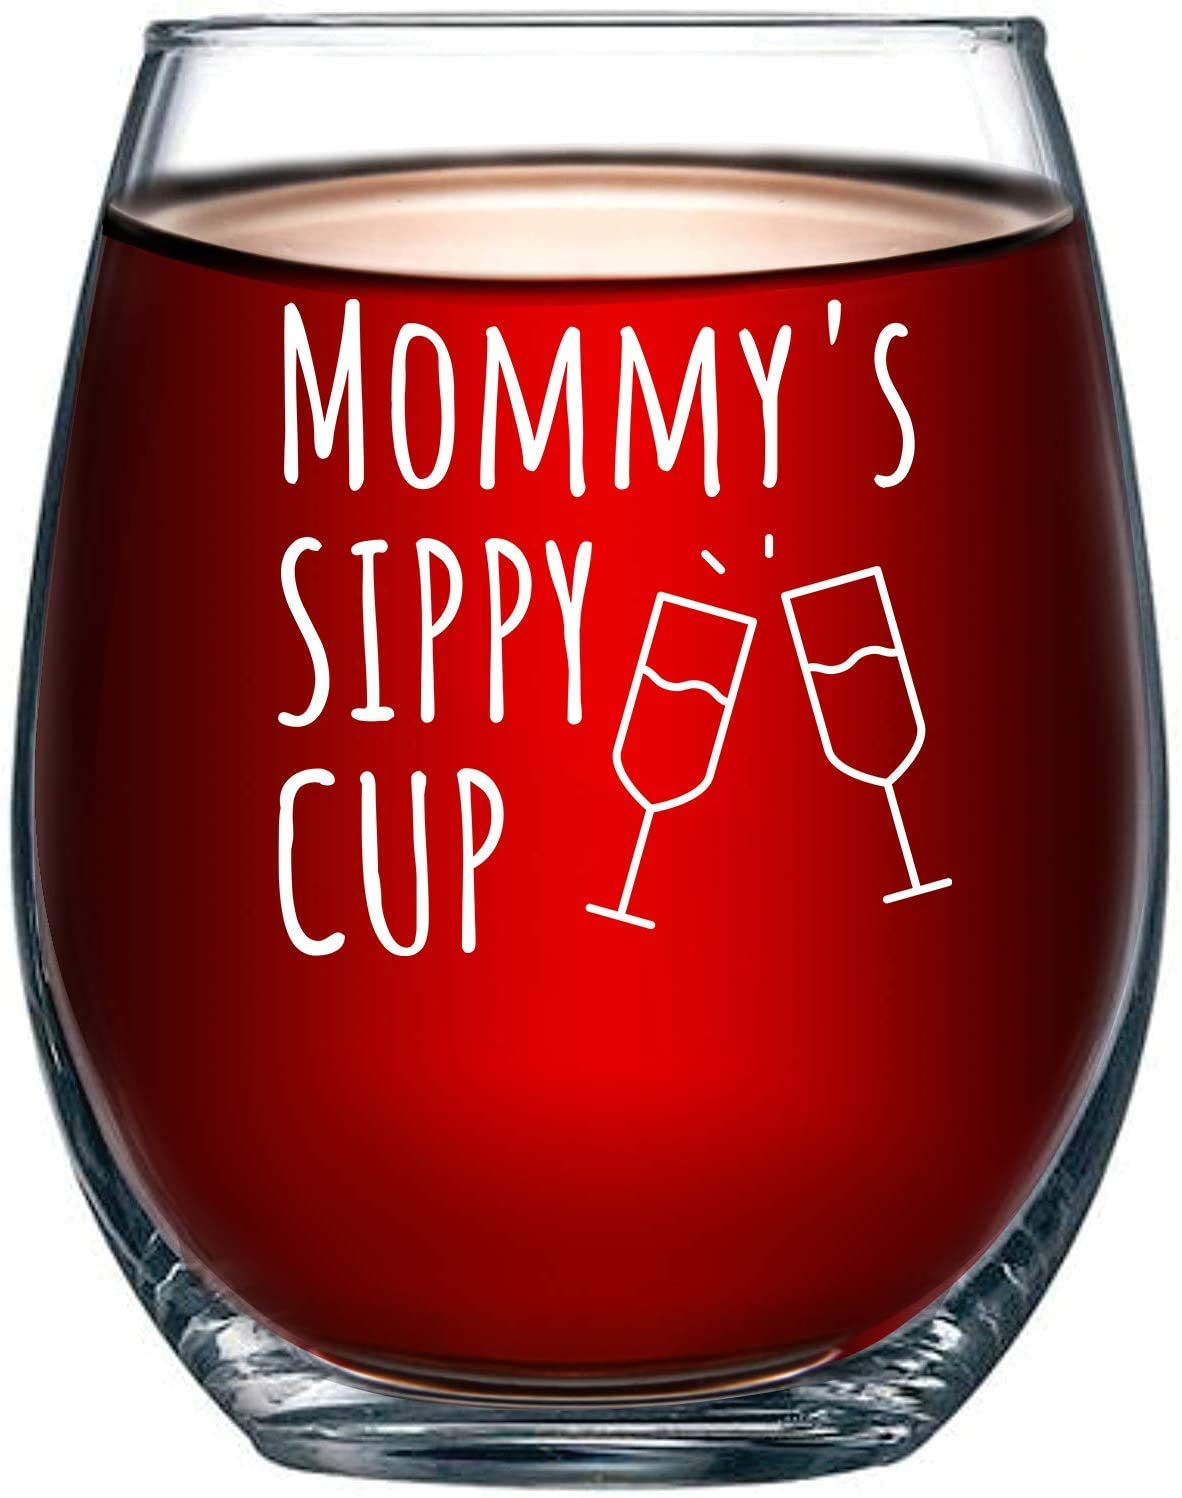 Mommy's Sippy Cup Funny Wine Glass Present for Mom, Idea for Her, Birthday for Mom 15oz